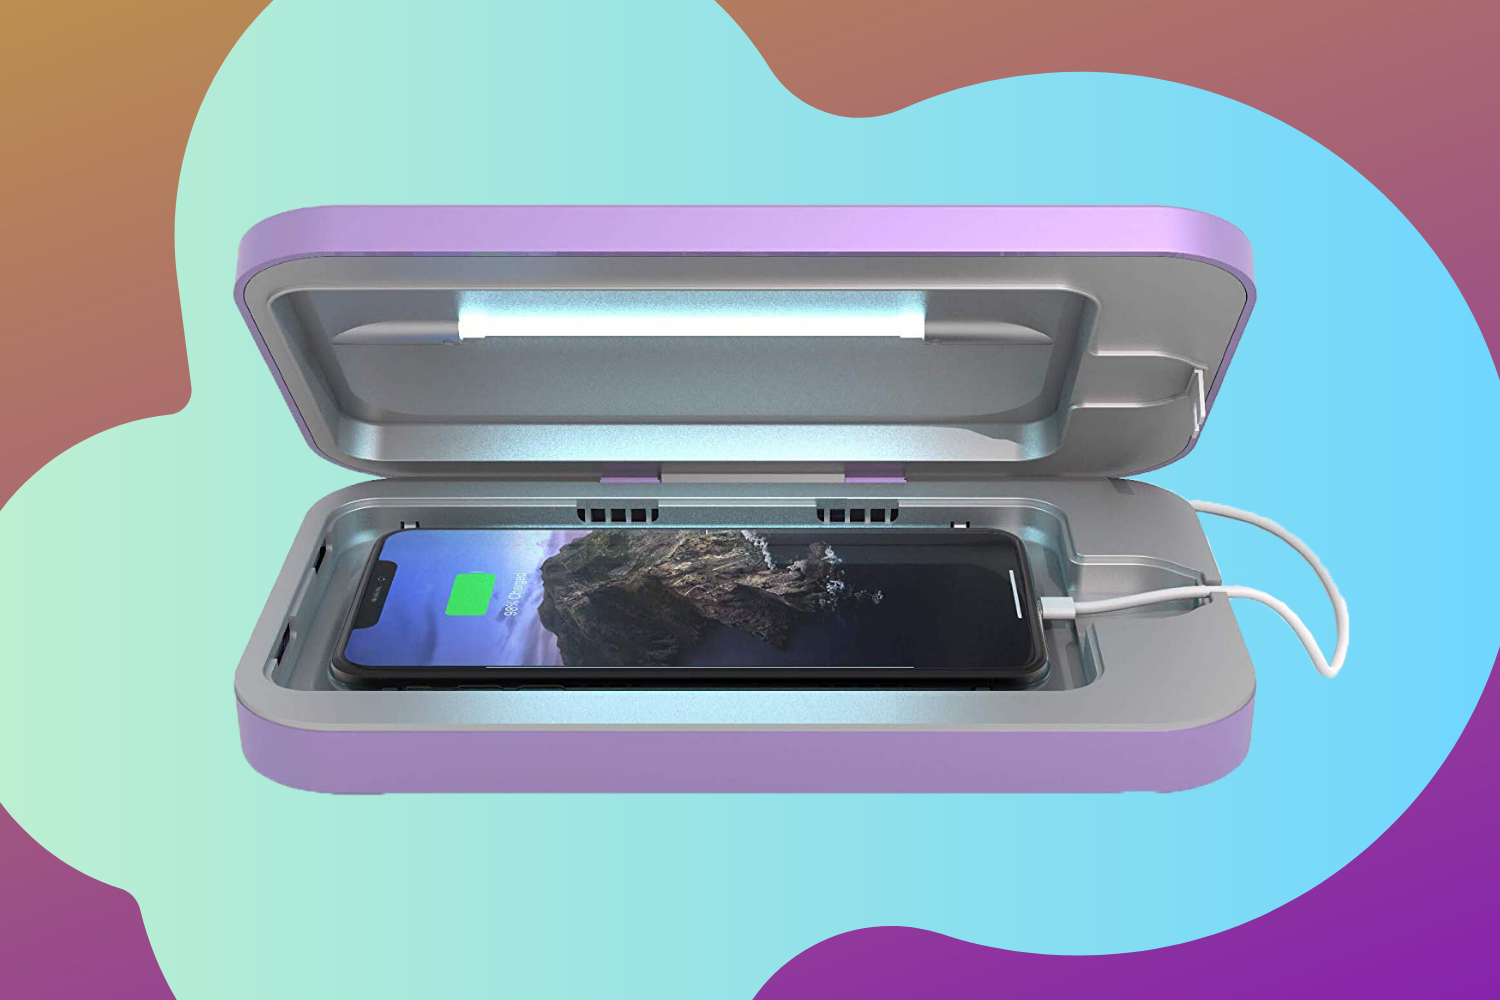 This Genius Phone Sanitizer Case Will Rid Your Device of Germs